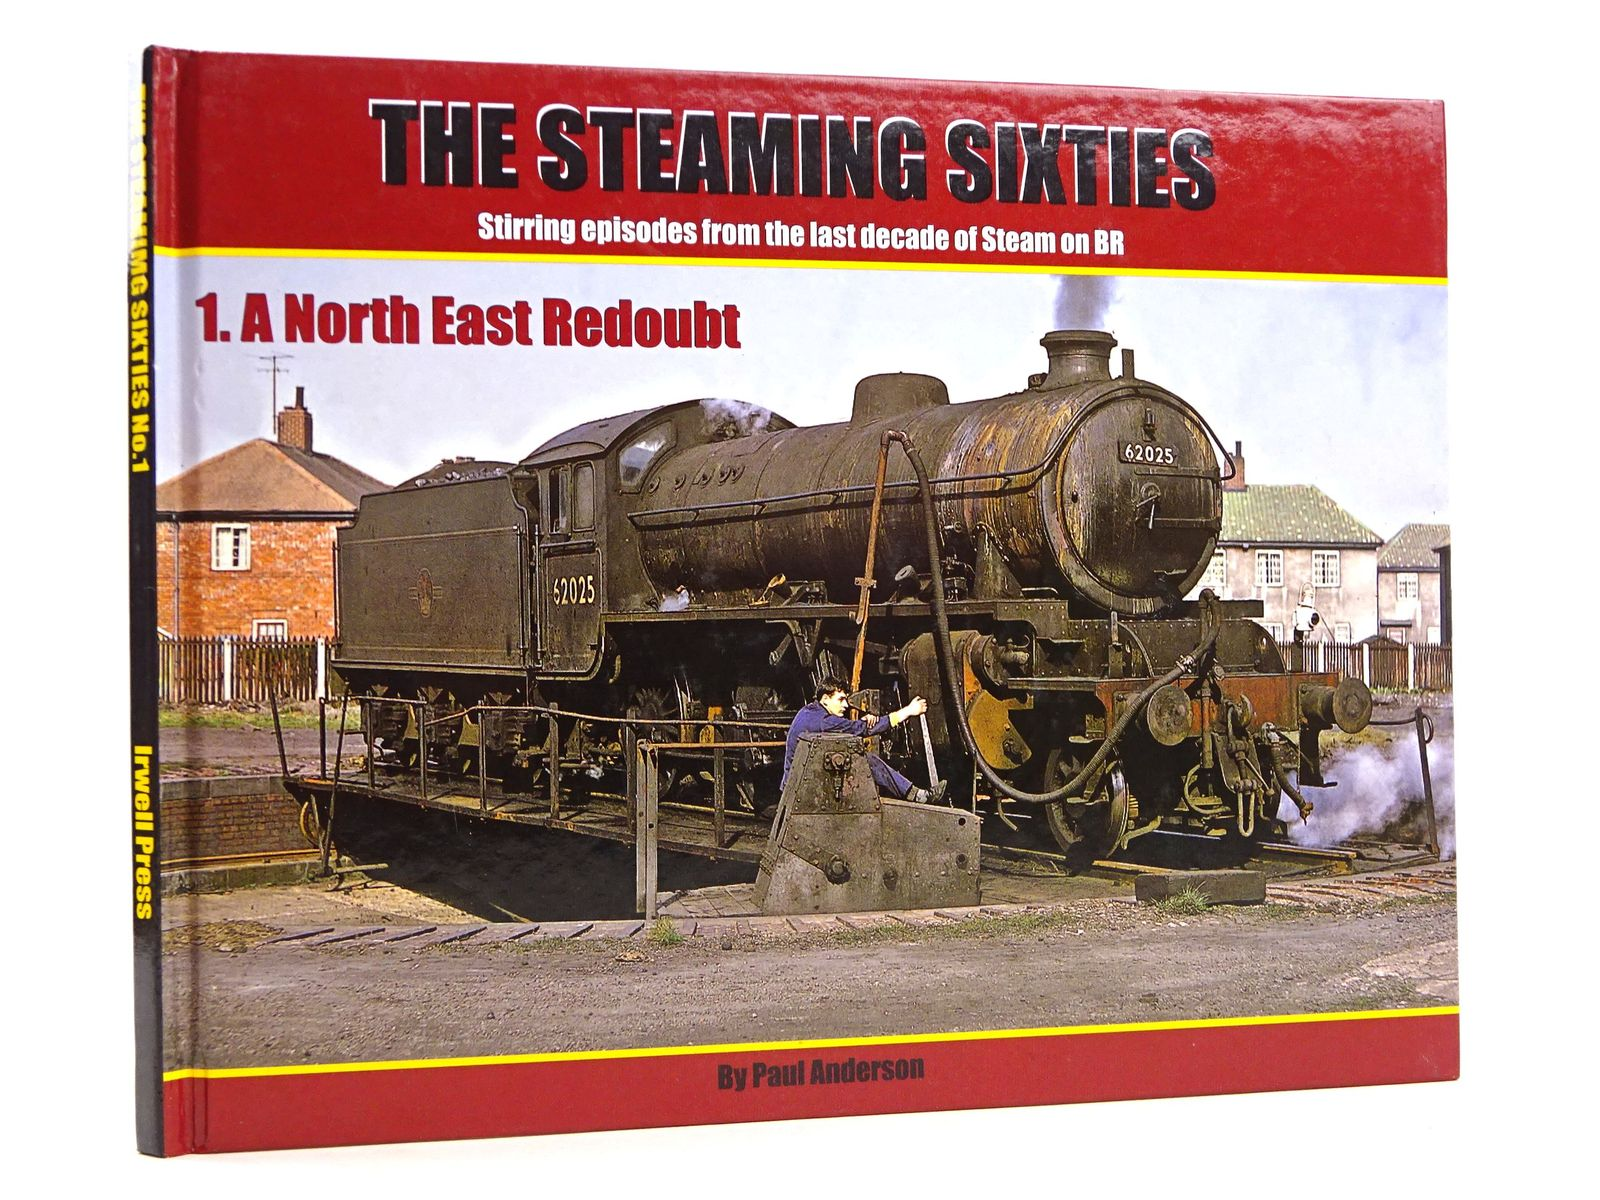 Photo of THE STEAMING SIXTIES: STIRRING EPISODES FROM THE LAST DECADE OF STEAM ON BR 1. A NORTH EAST REDOUBT written by Anderson, Paul published by Irwell Press (STOCK CODE: 1818144)  for sale by Stella & Rose's Books